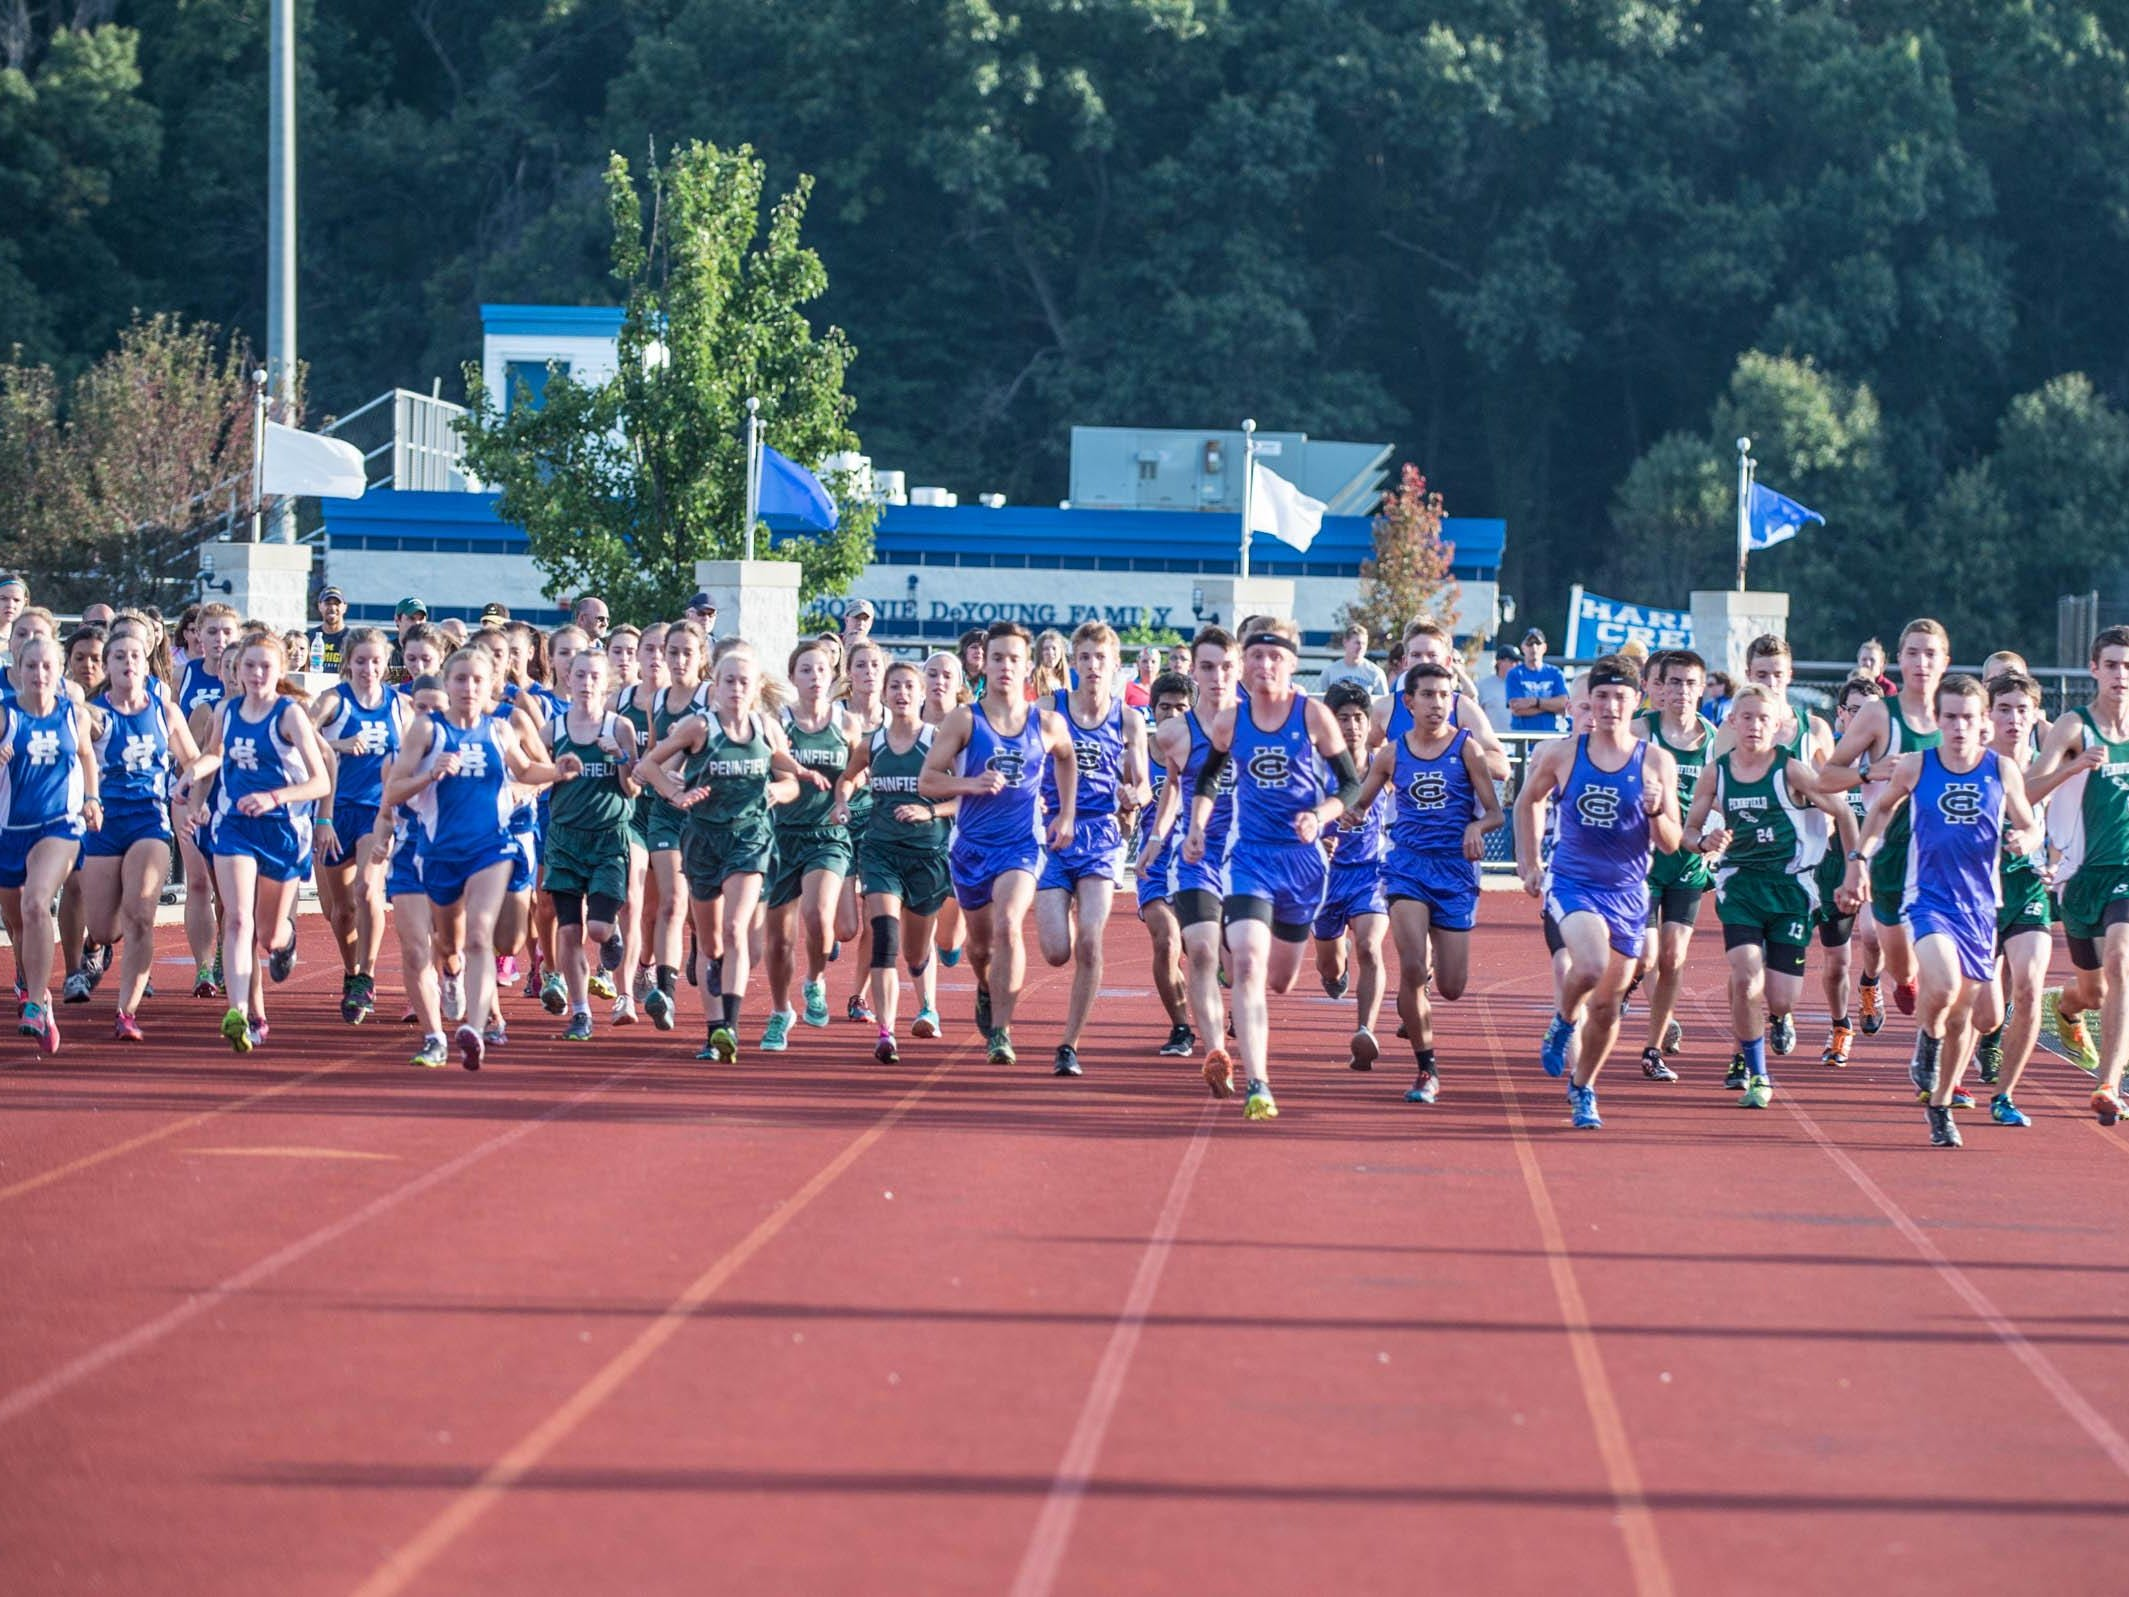 Harper Creek and Pennfield runners at the start of the cross country meet at Harper Creek Friday.